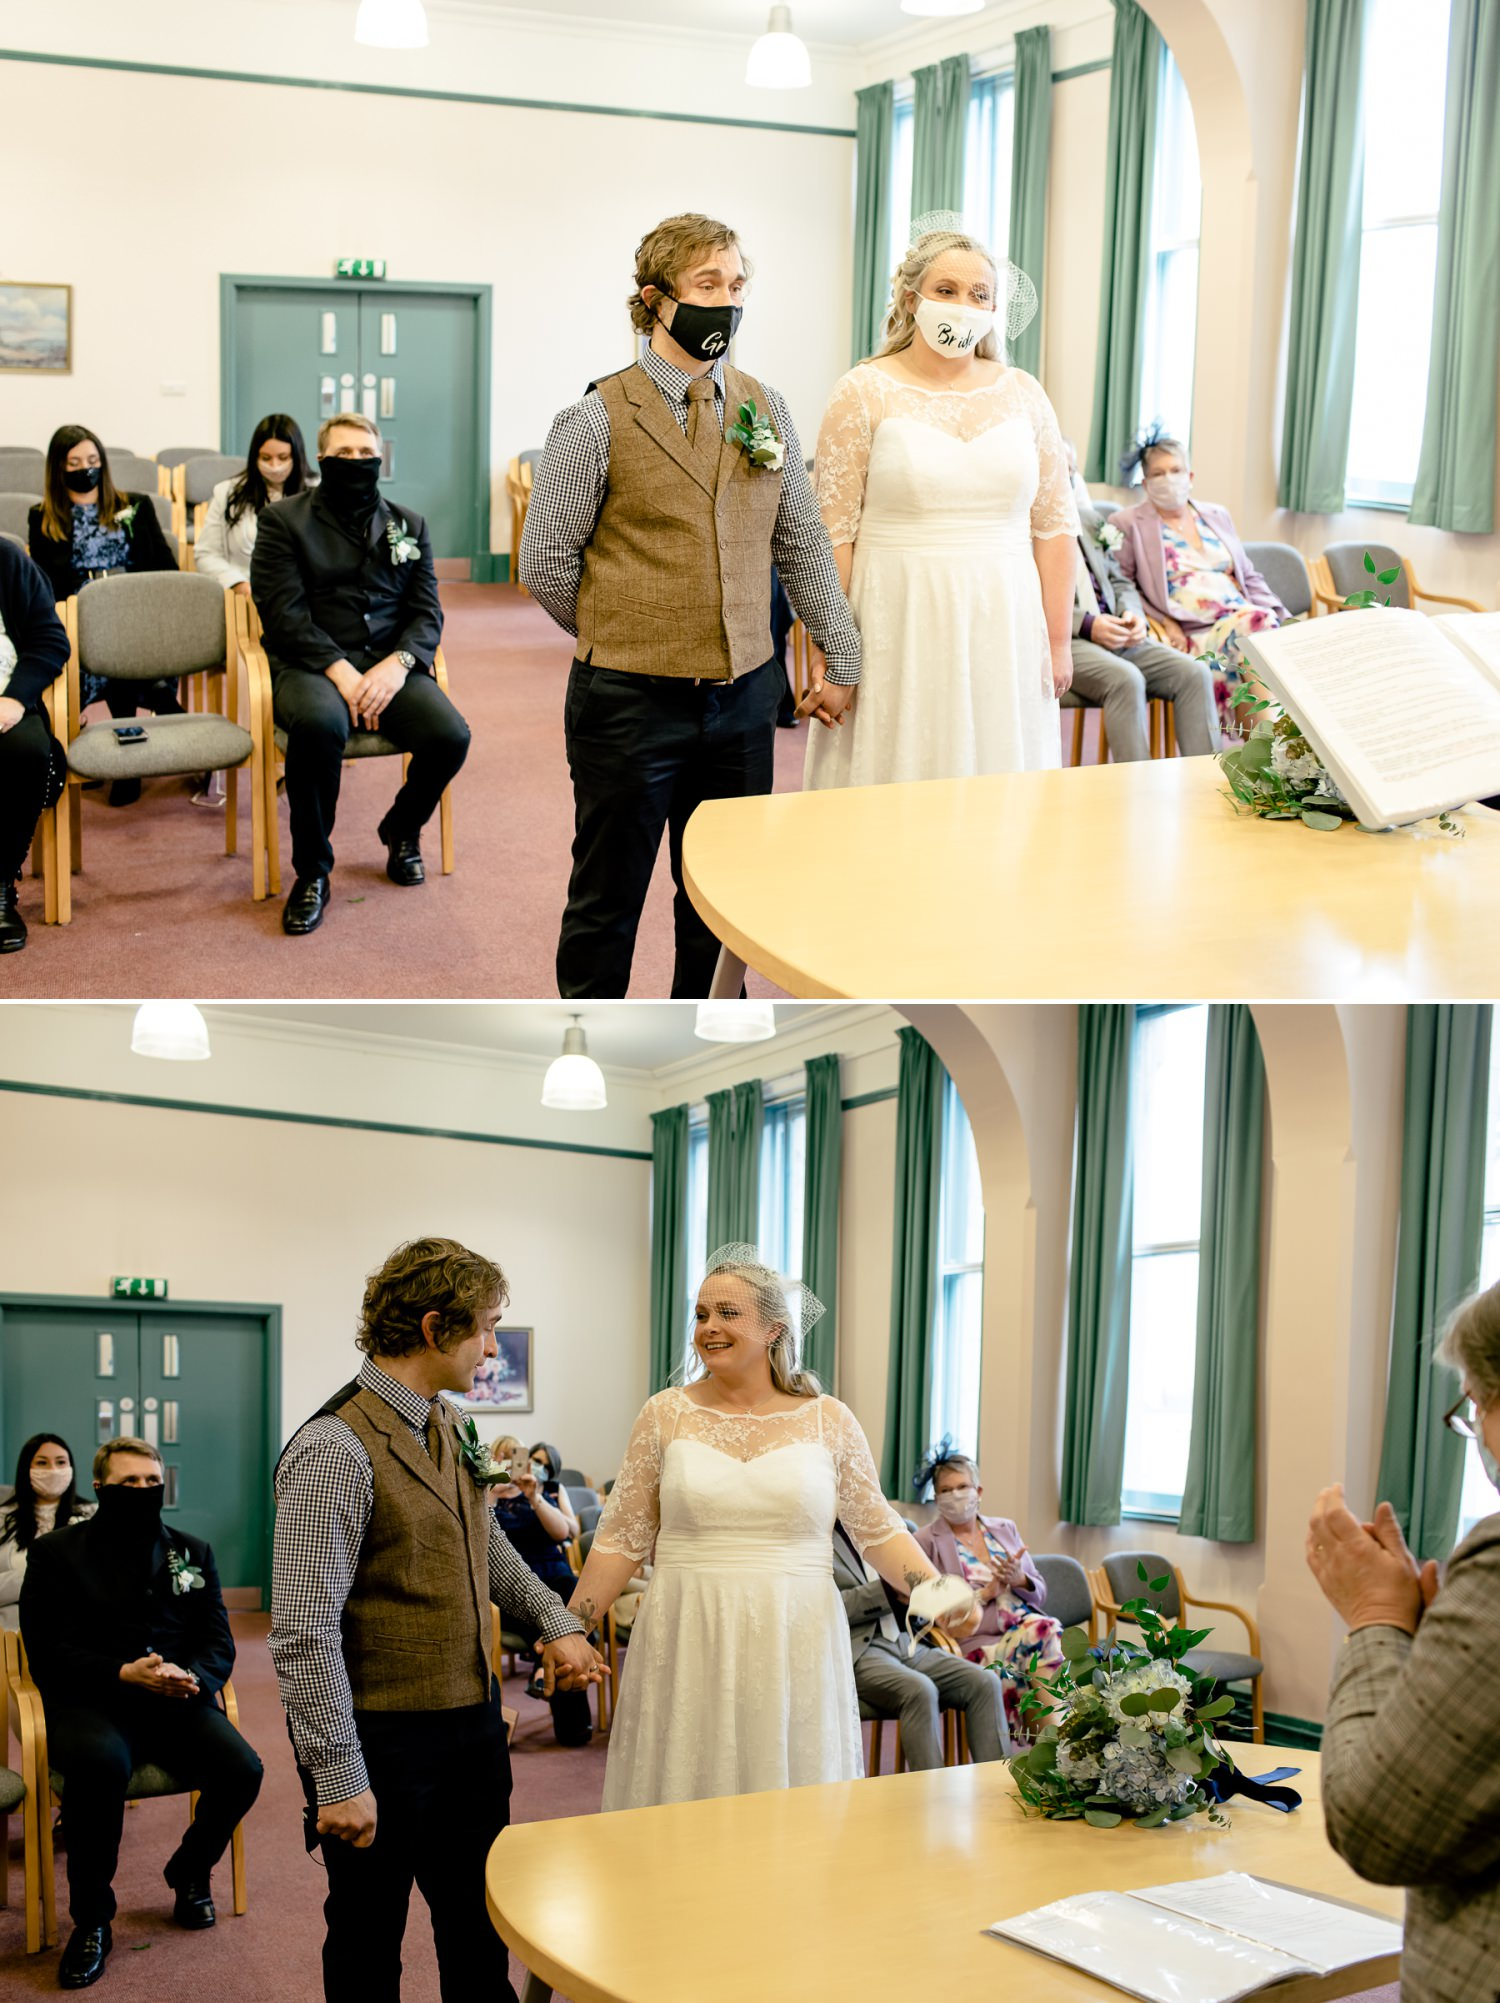 Affordable Wedding photographer doing Covid restricted wedding ceremony at Ruthin Town Hall